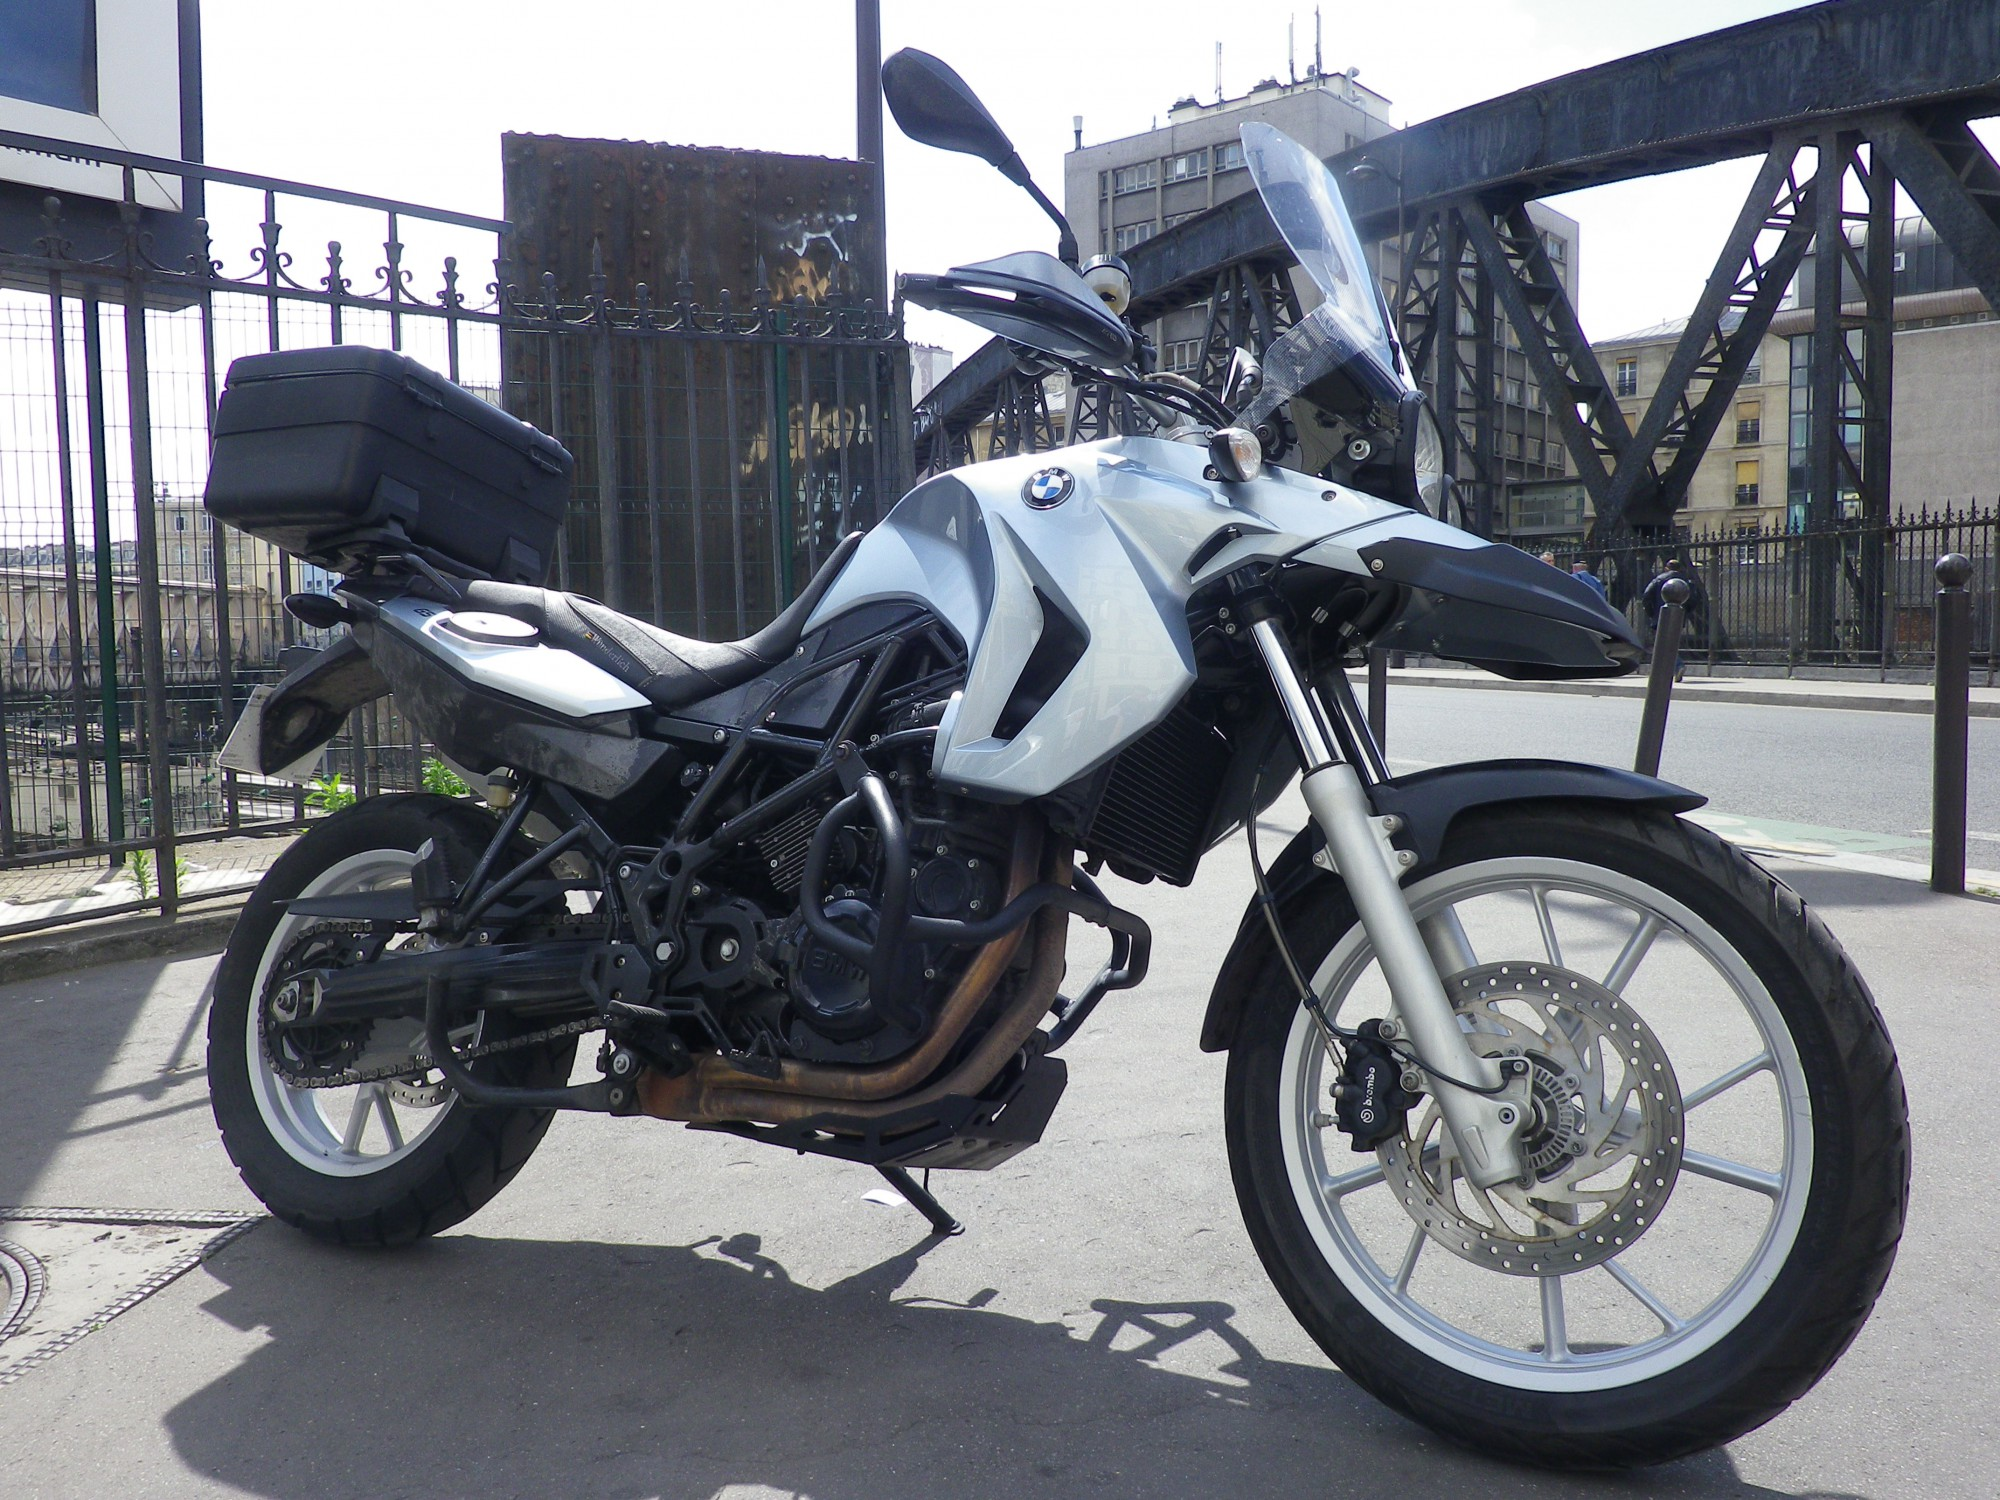 BMW 800 F650GS TWIN 09 ABS ACCESSIBLE A2